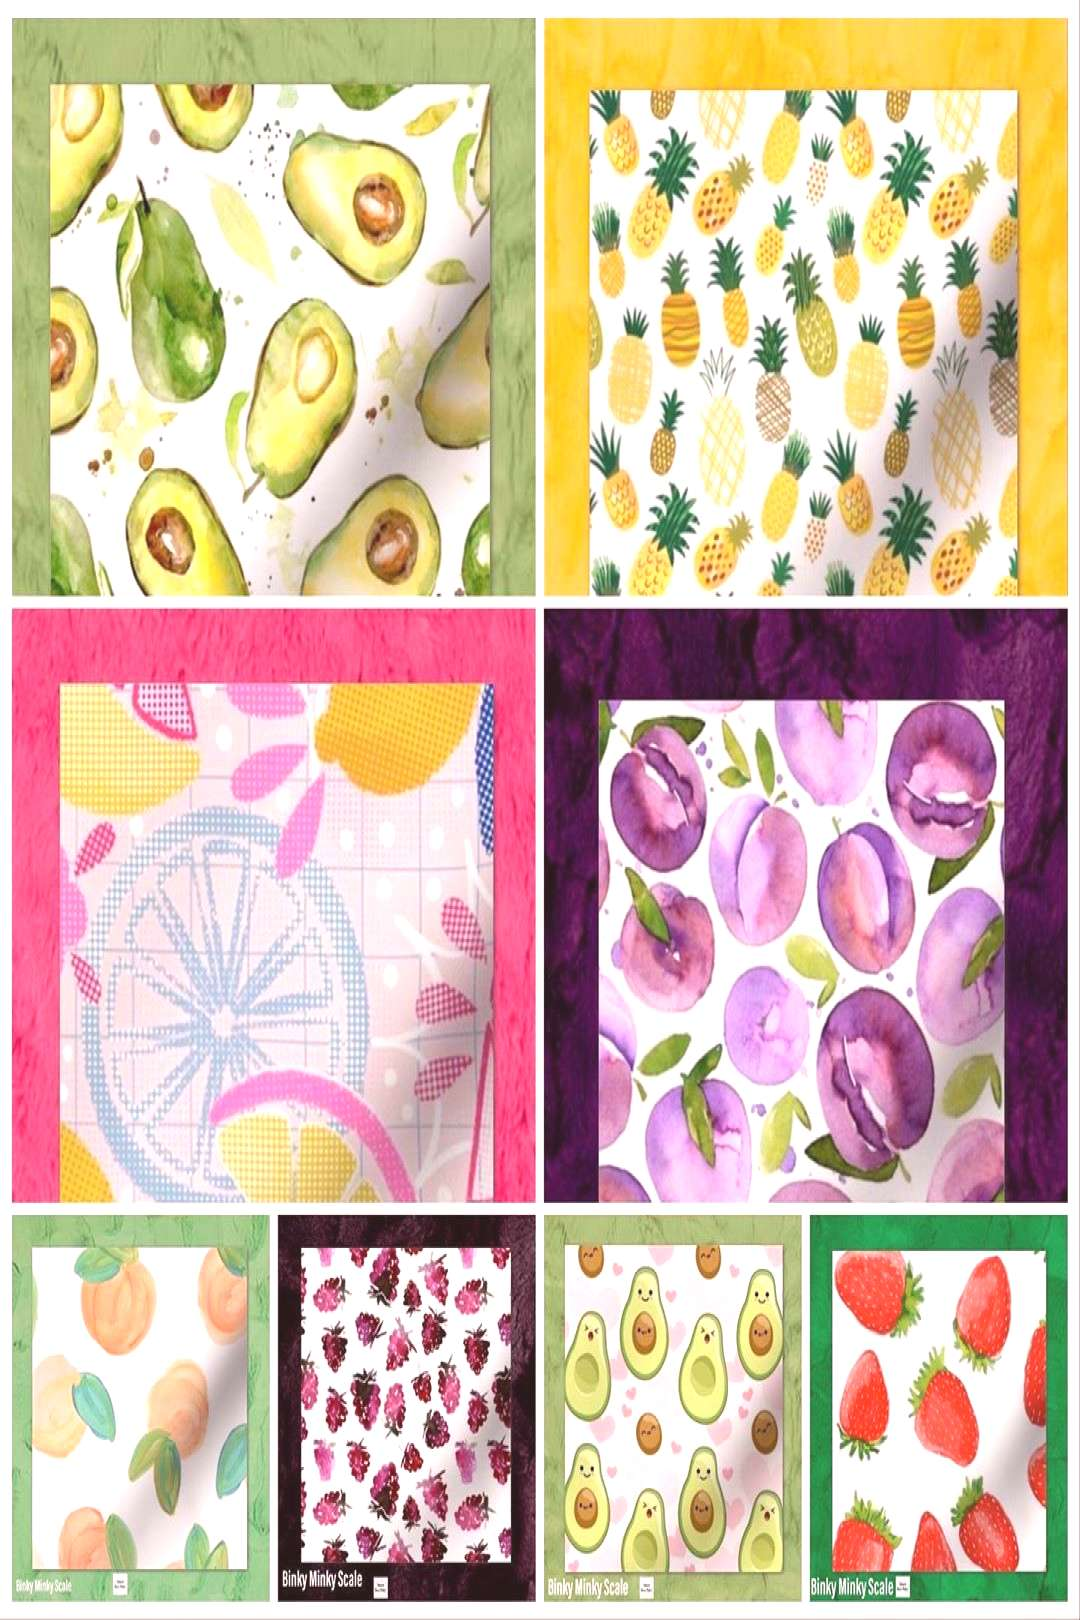 Check out these fruity new designs